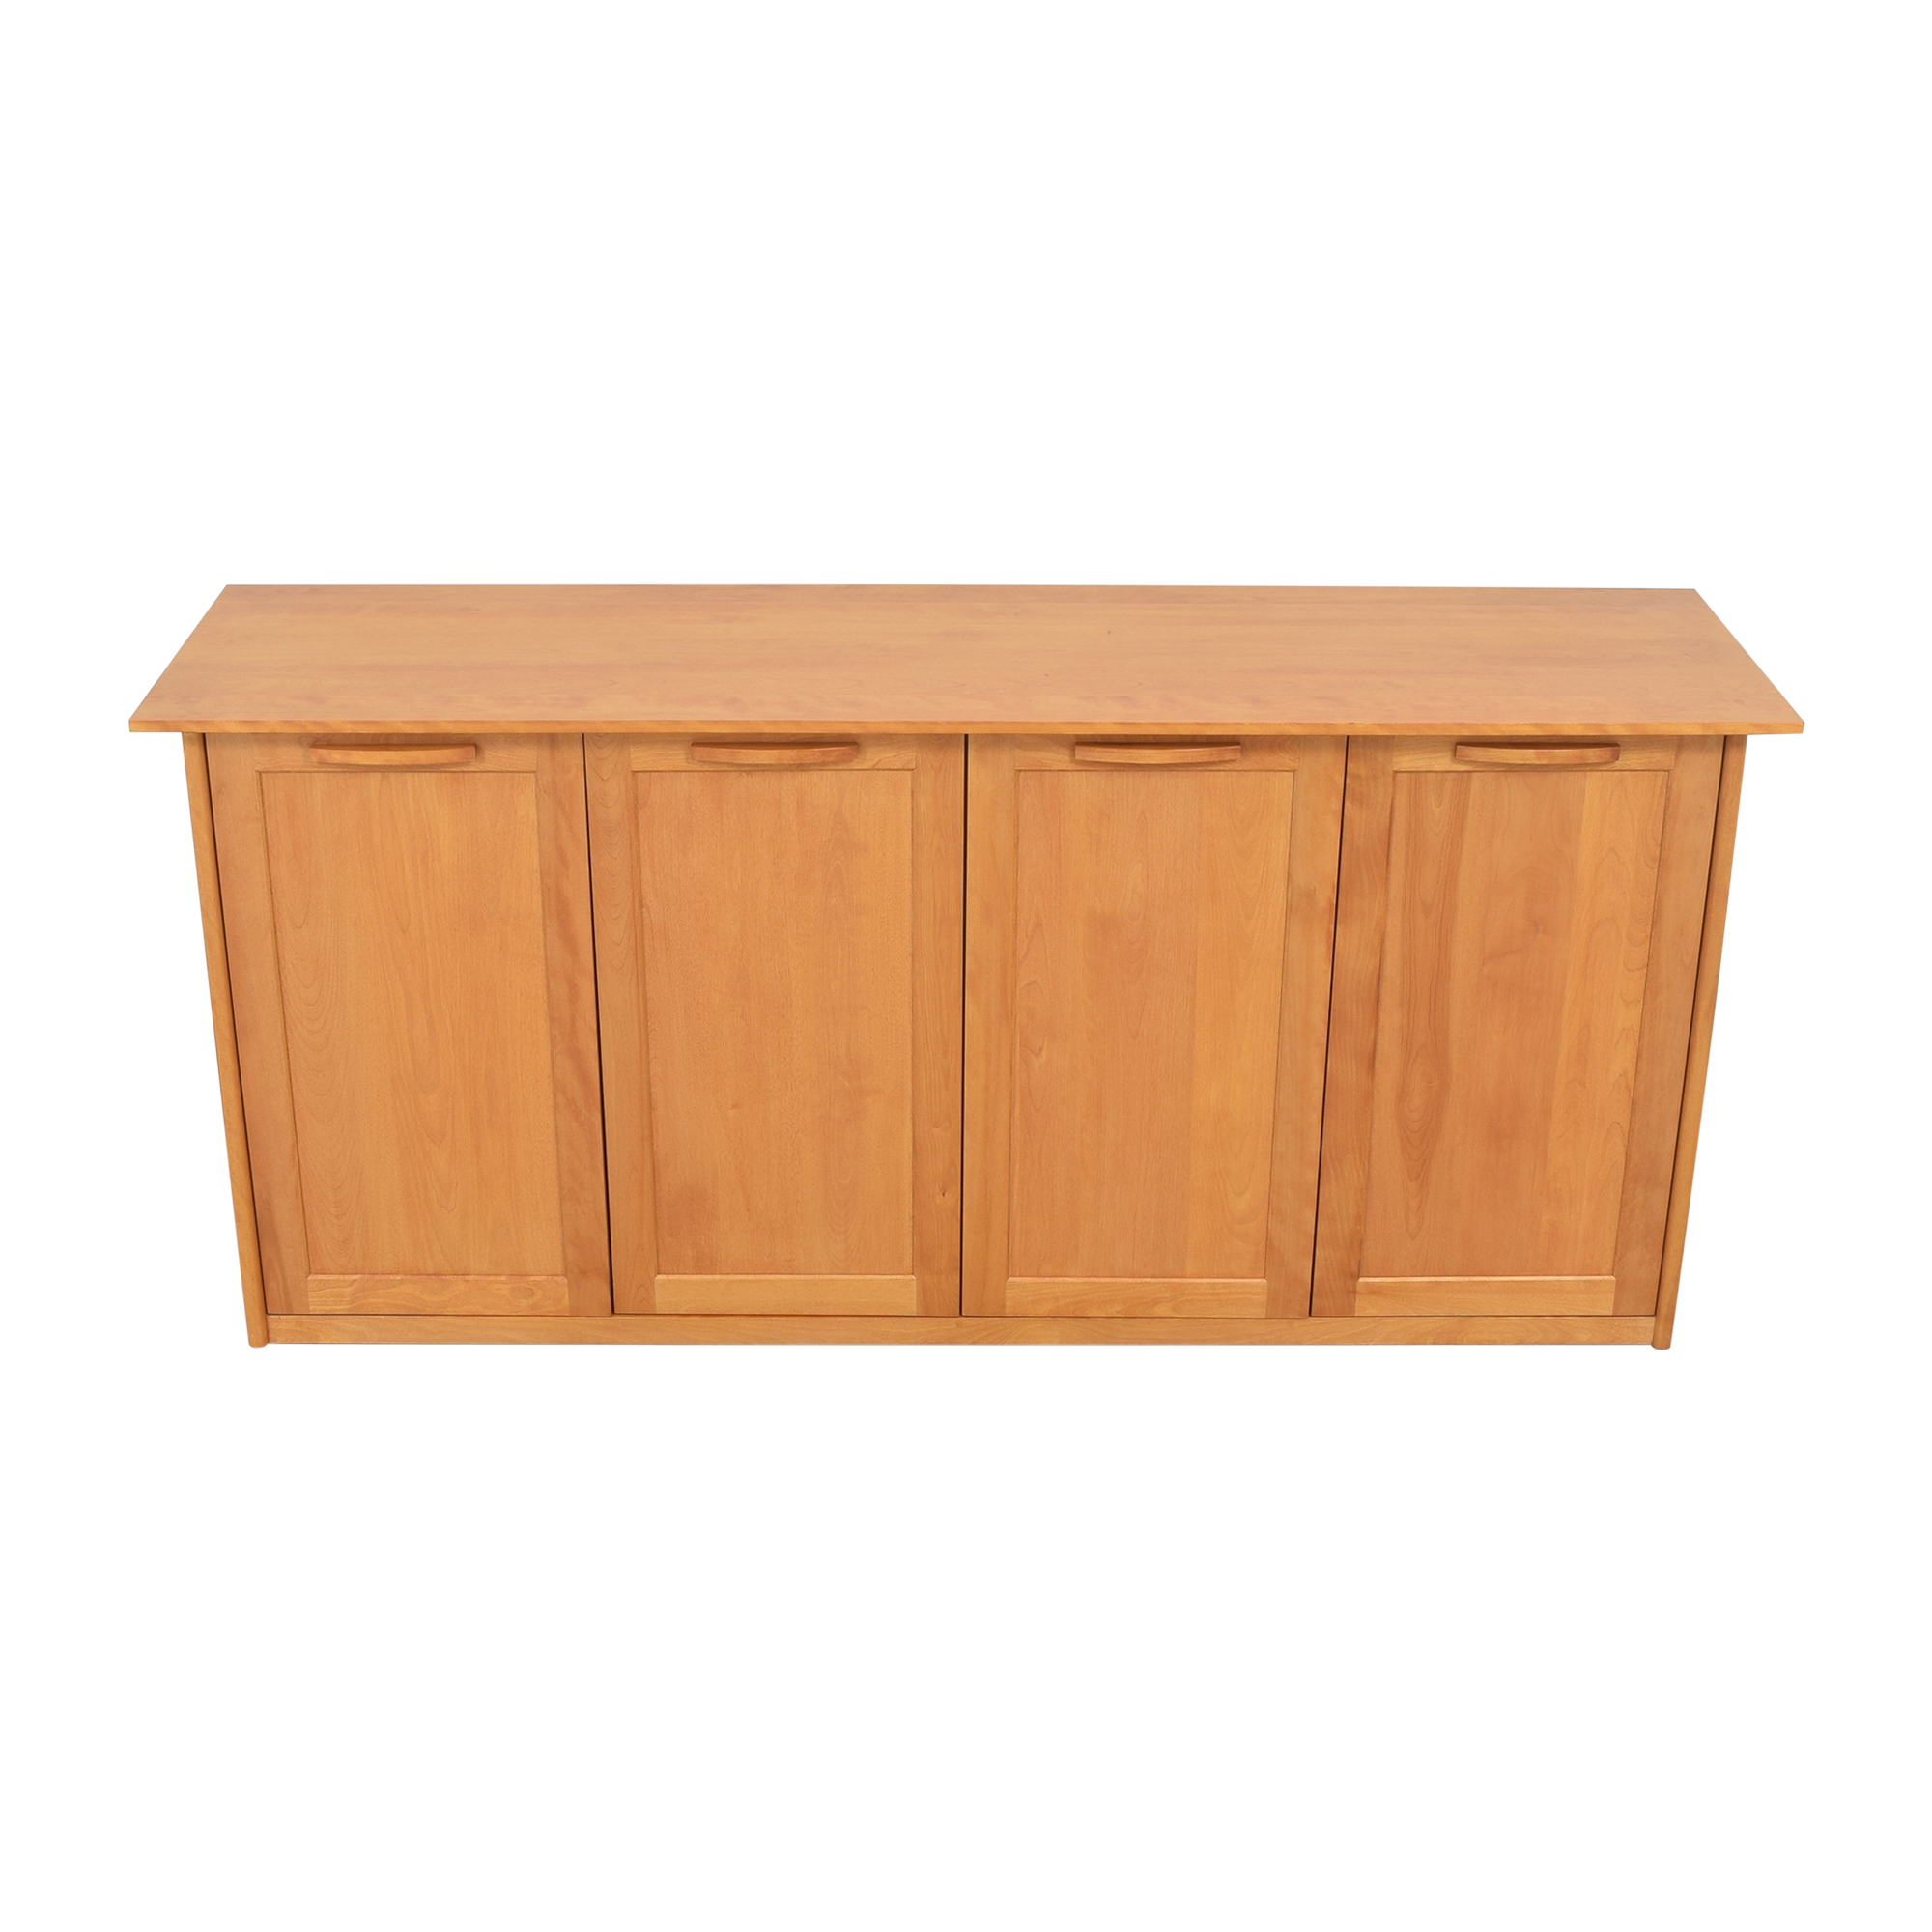 shop Pompanoosuc Mills Buffet Cabinet Pompanoosuc Mills Cabinets & Sideboards